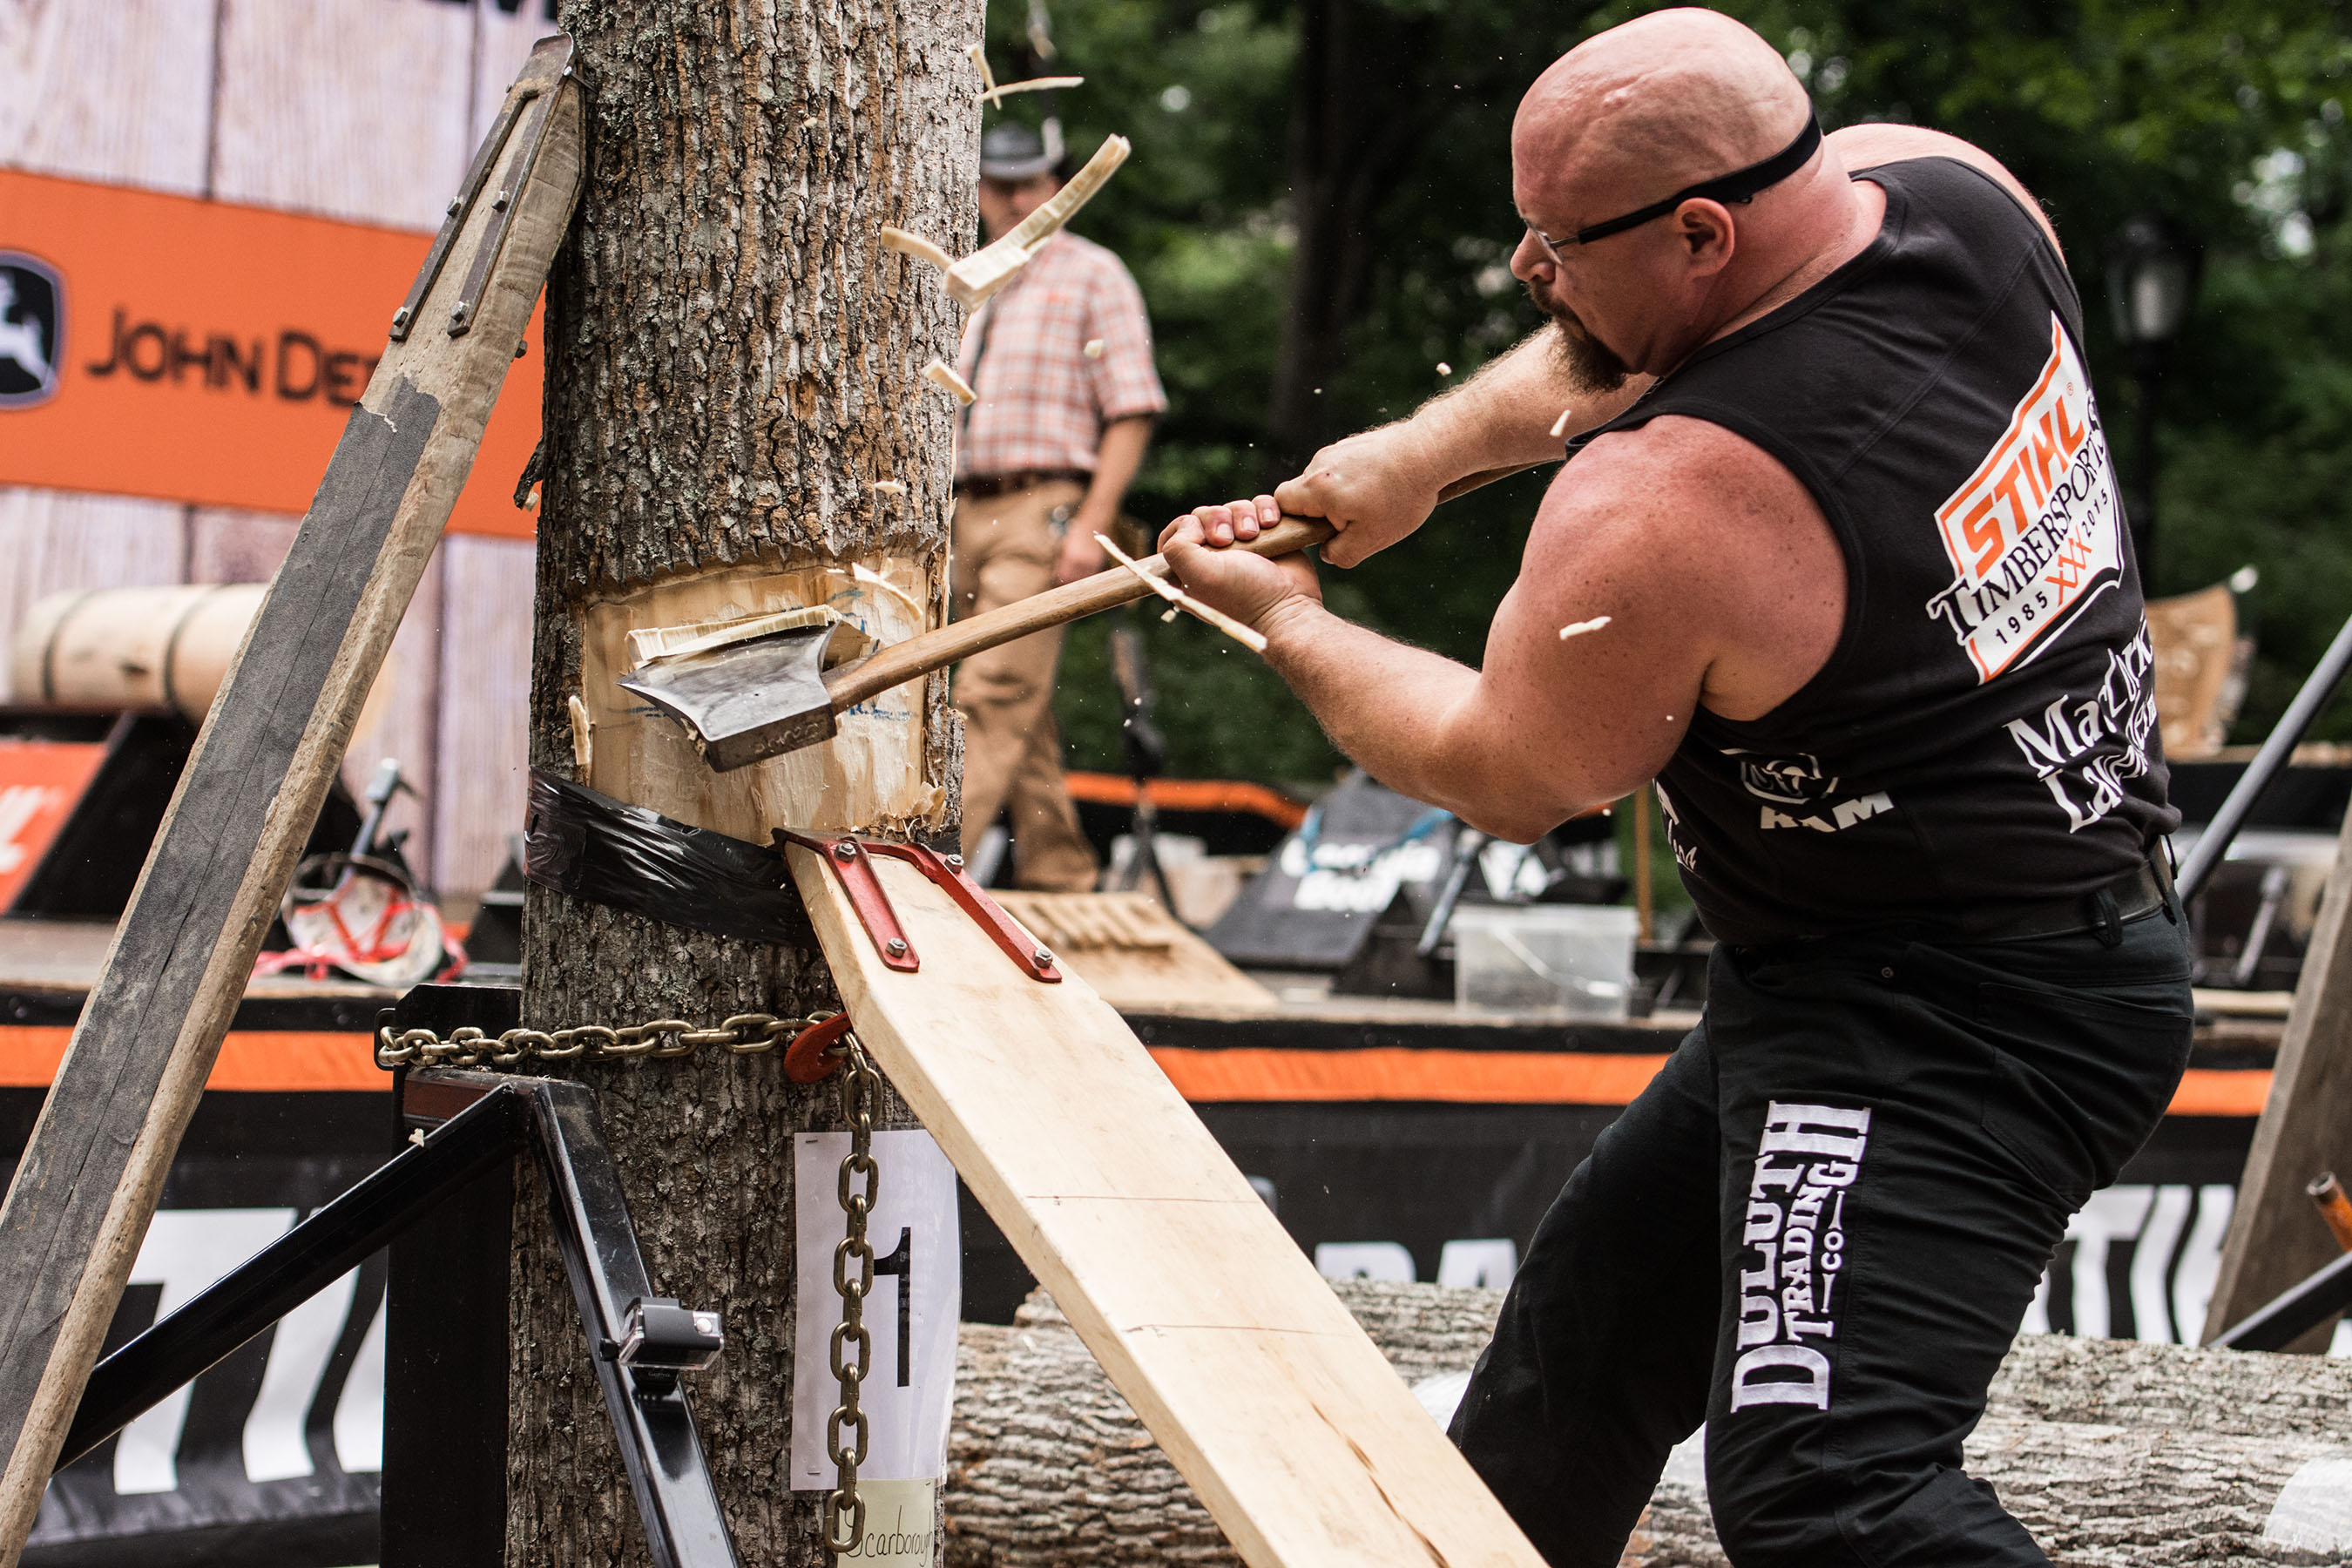 Above is an image of Arden Cogar, Jr. competing in the springboard chop at the 2015 U.S. Championship, which was held in Central Park, NYC.